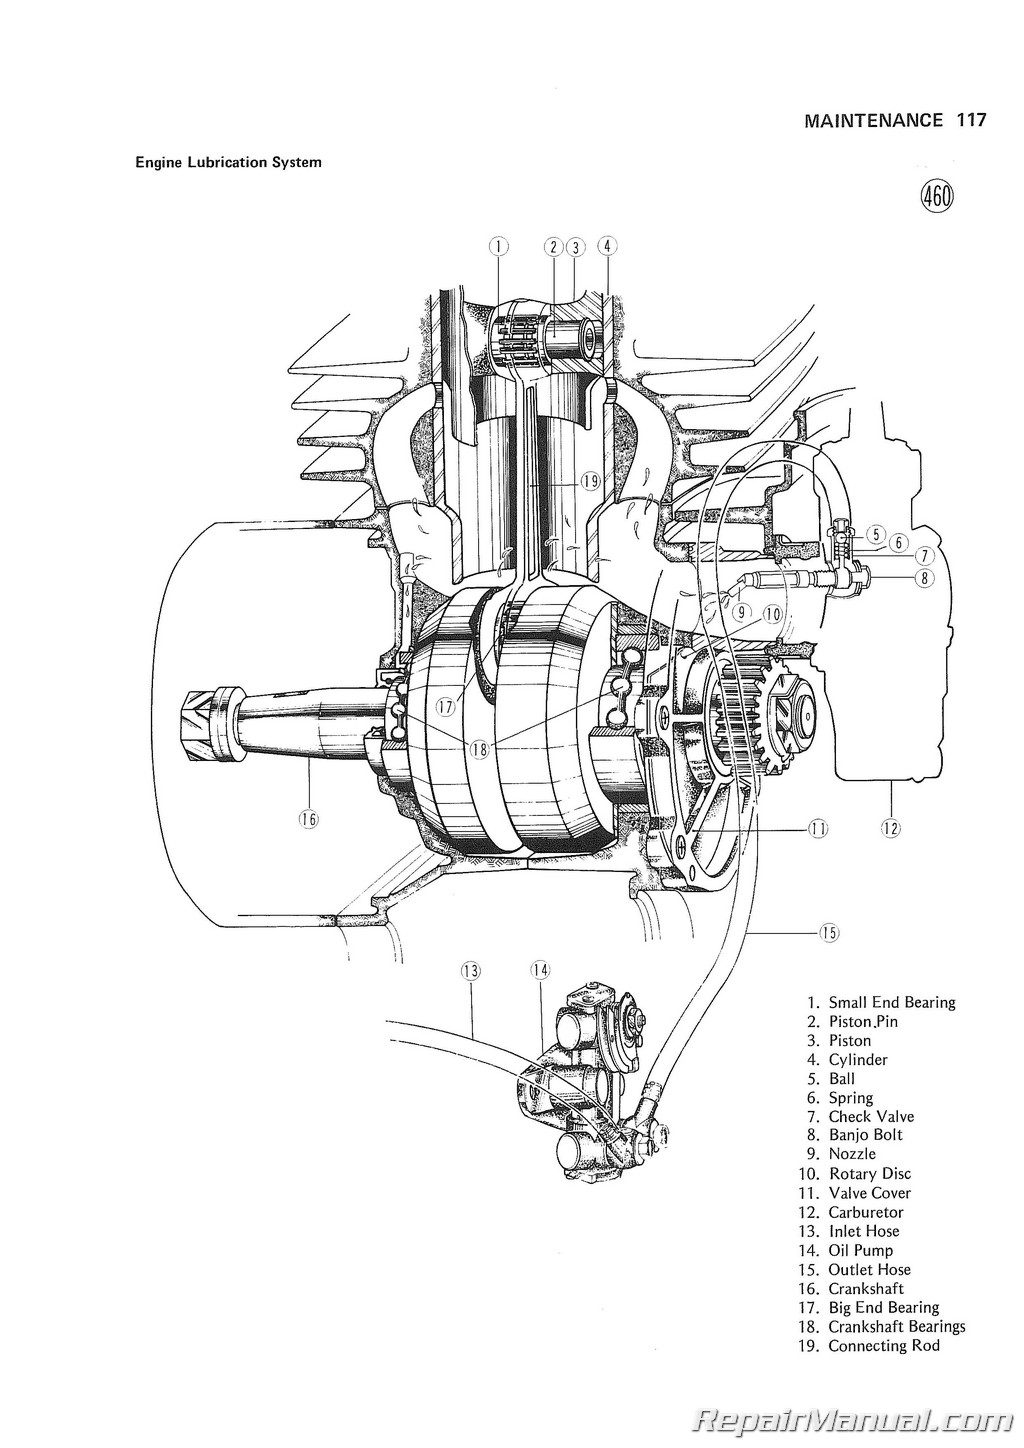 Ke175 Wiring Diagram Simple 1978 Kawasaki Diagrams Motorcycle Service Manual 1976 Ke175b1 Ke 175